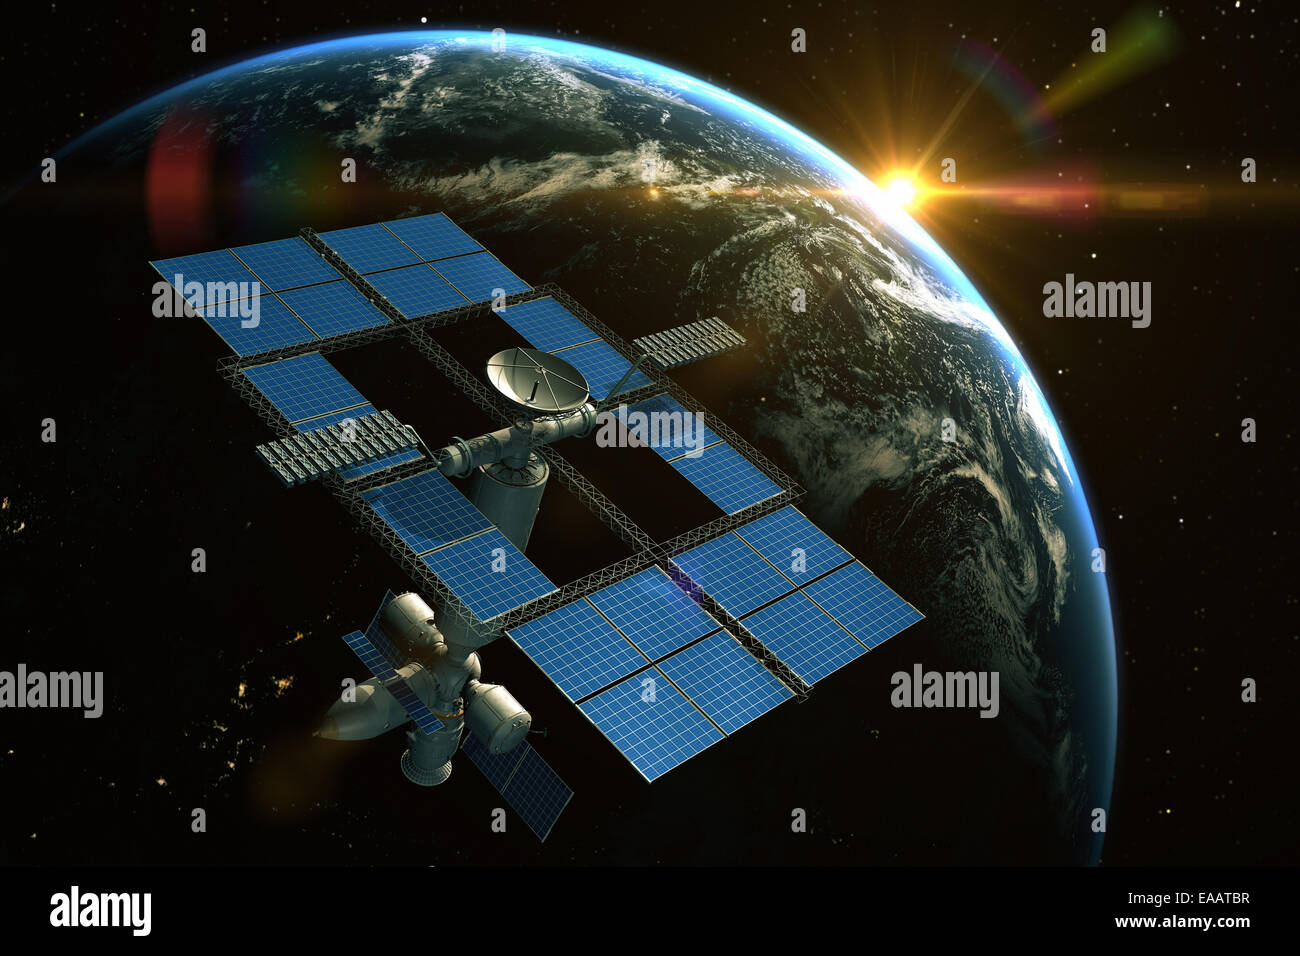 Space Station is orbiting around the Earth - Stock Image